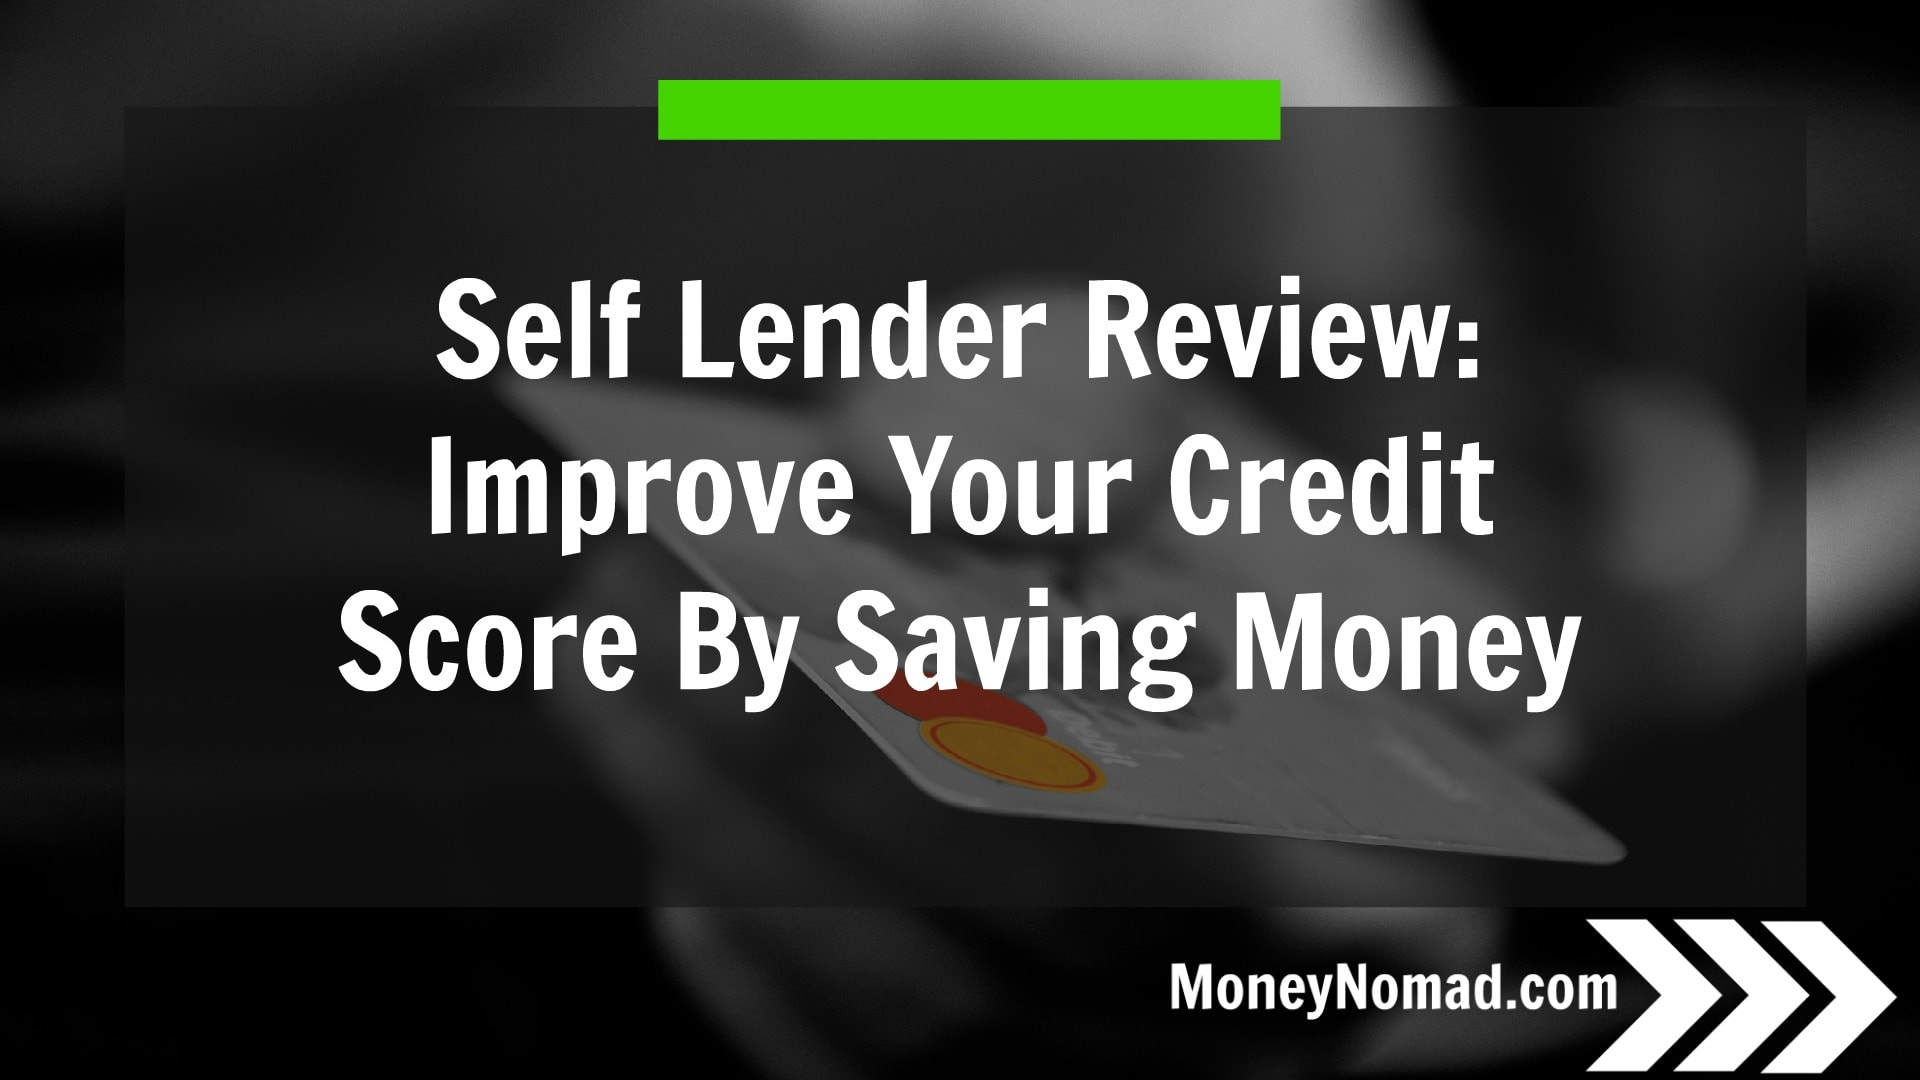 Self Lender Review Improve Your Credit Score By Saving Money